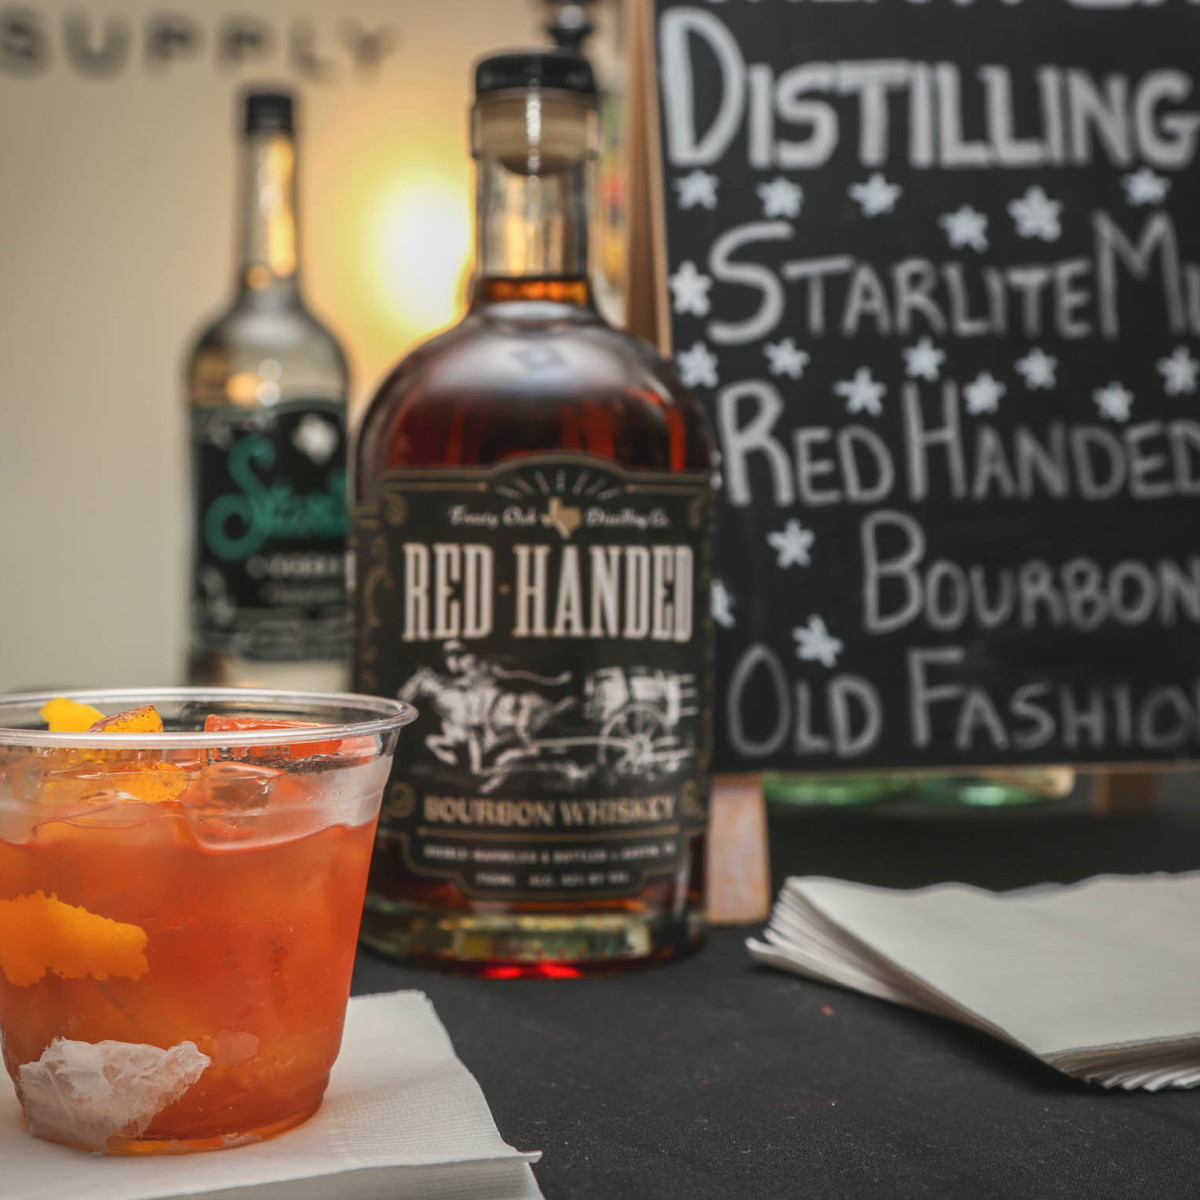 SHED Barbershop Service Industry Night CultureMap Austin Red Handed Bourbon Old Fashioned